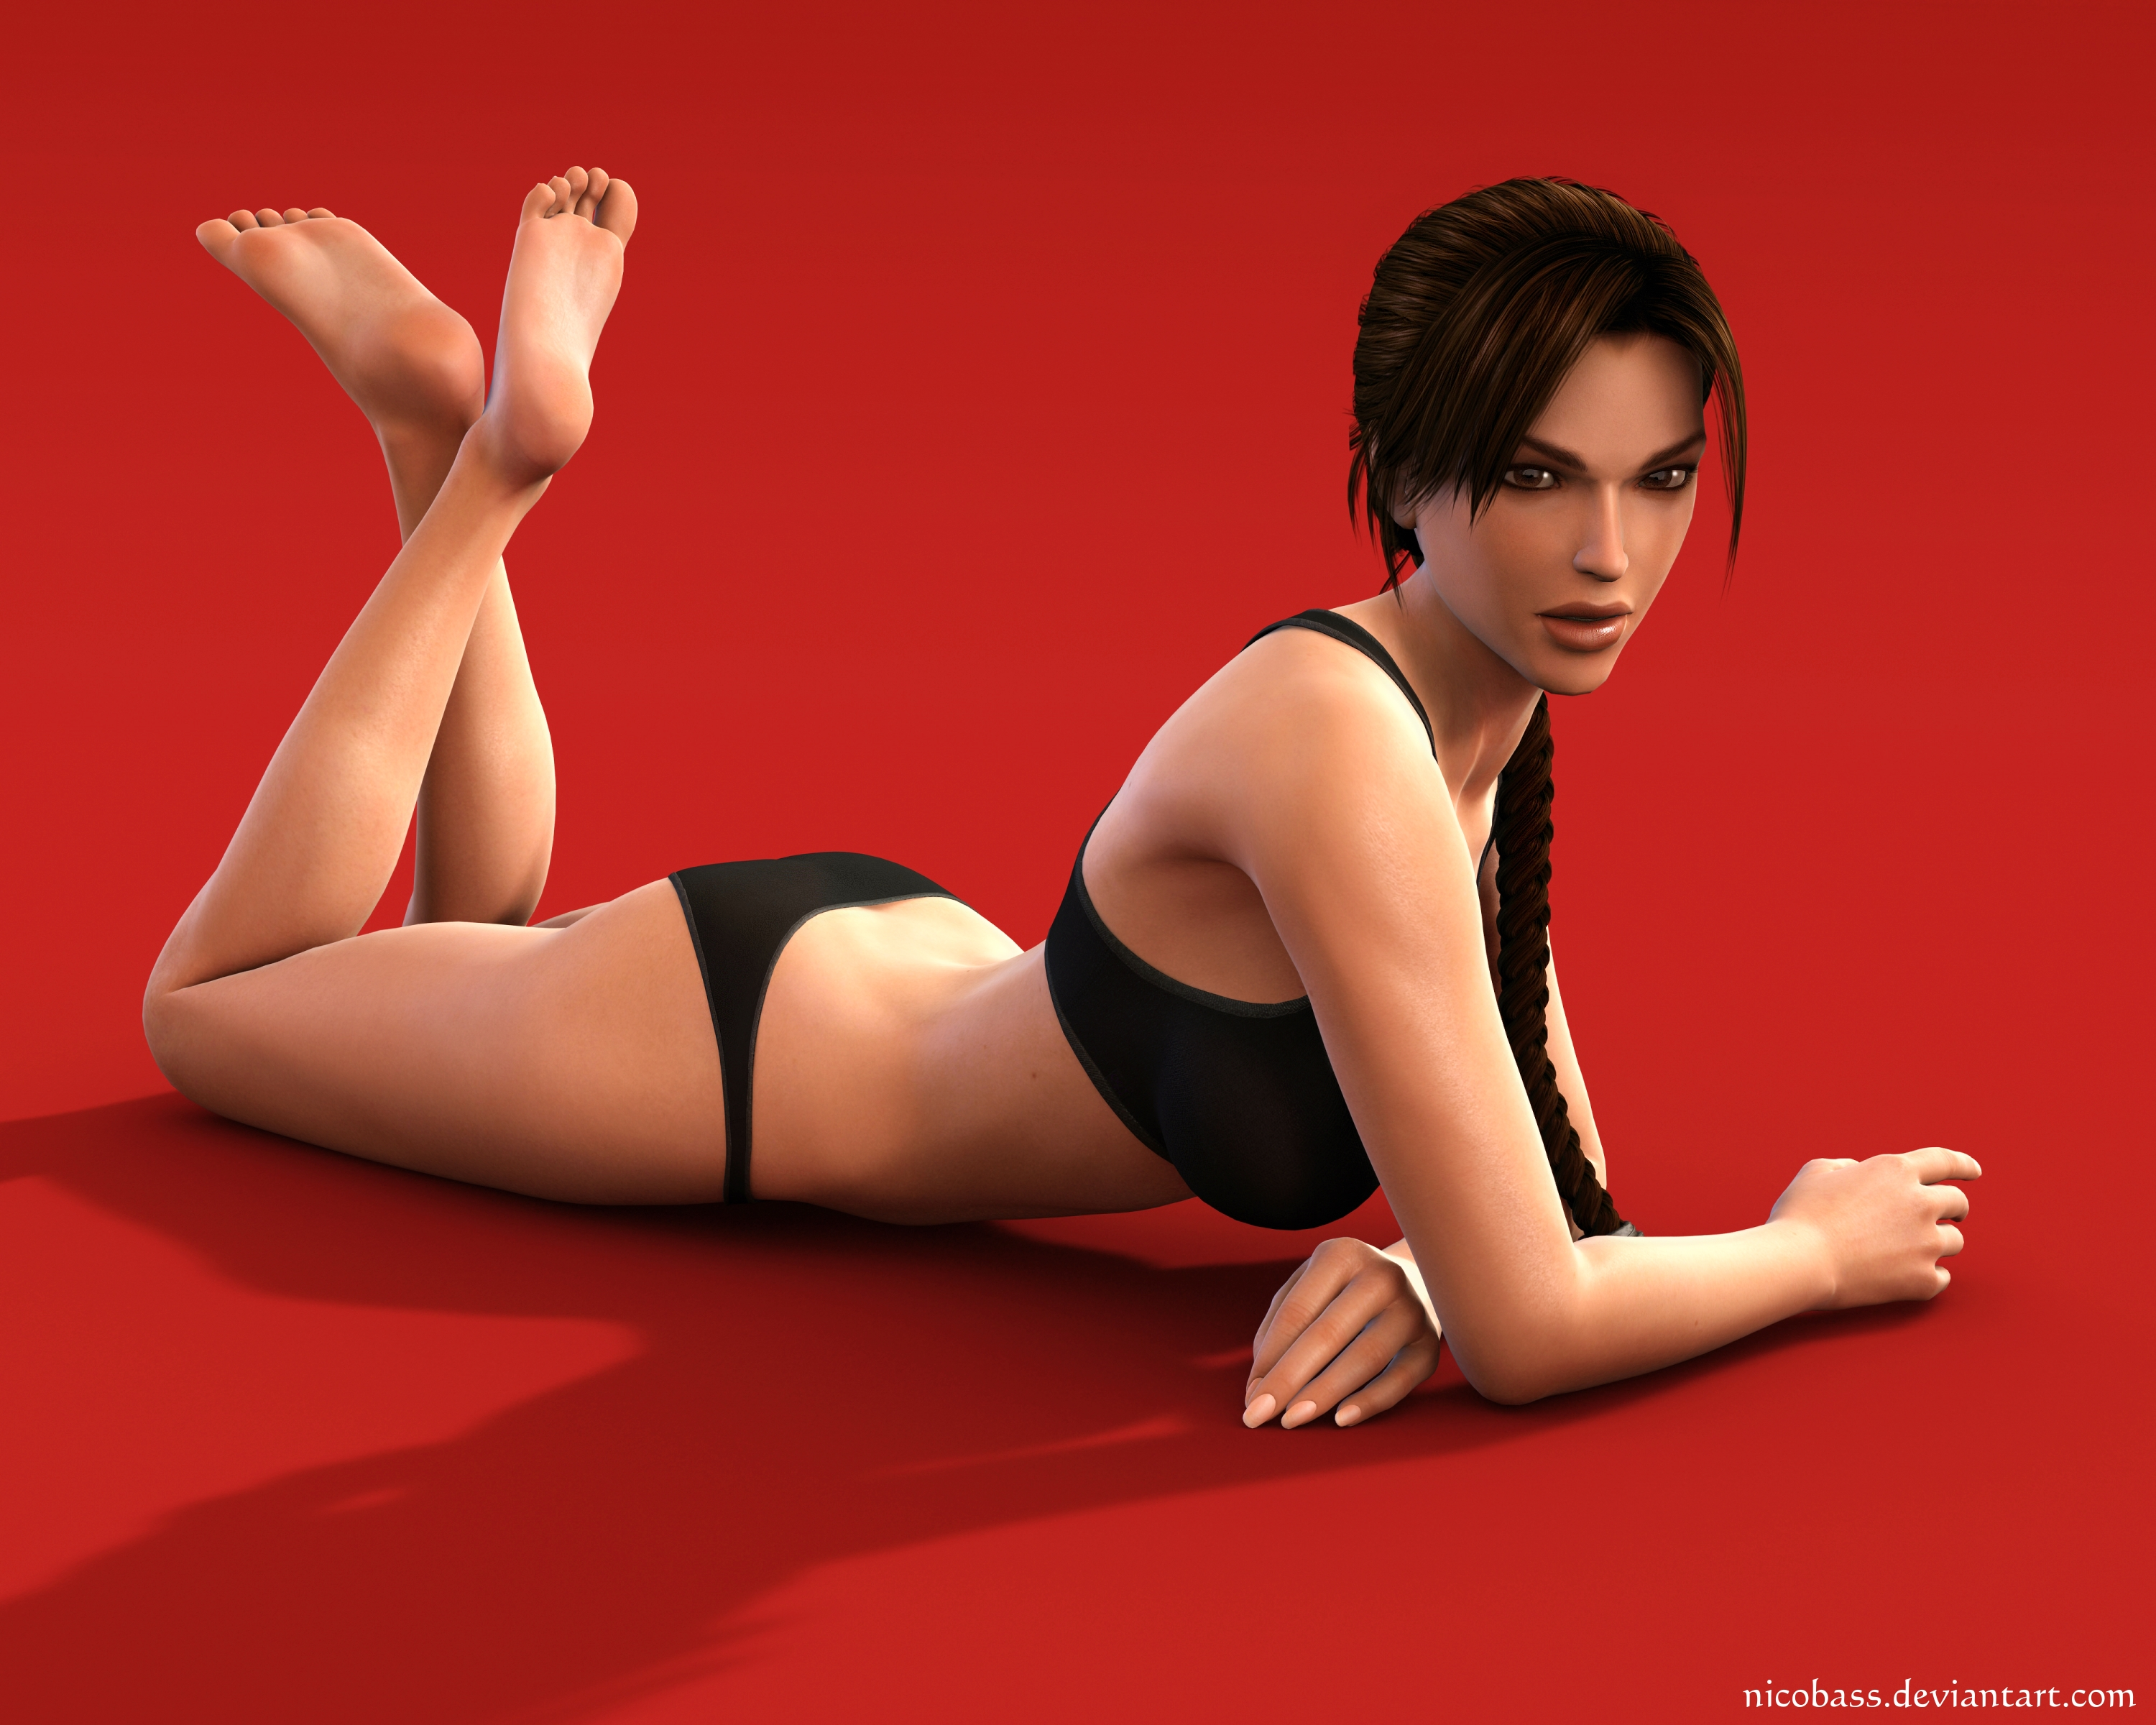 Lara croft fake xxx videos